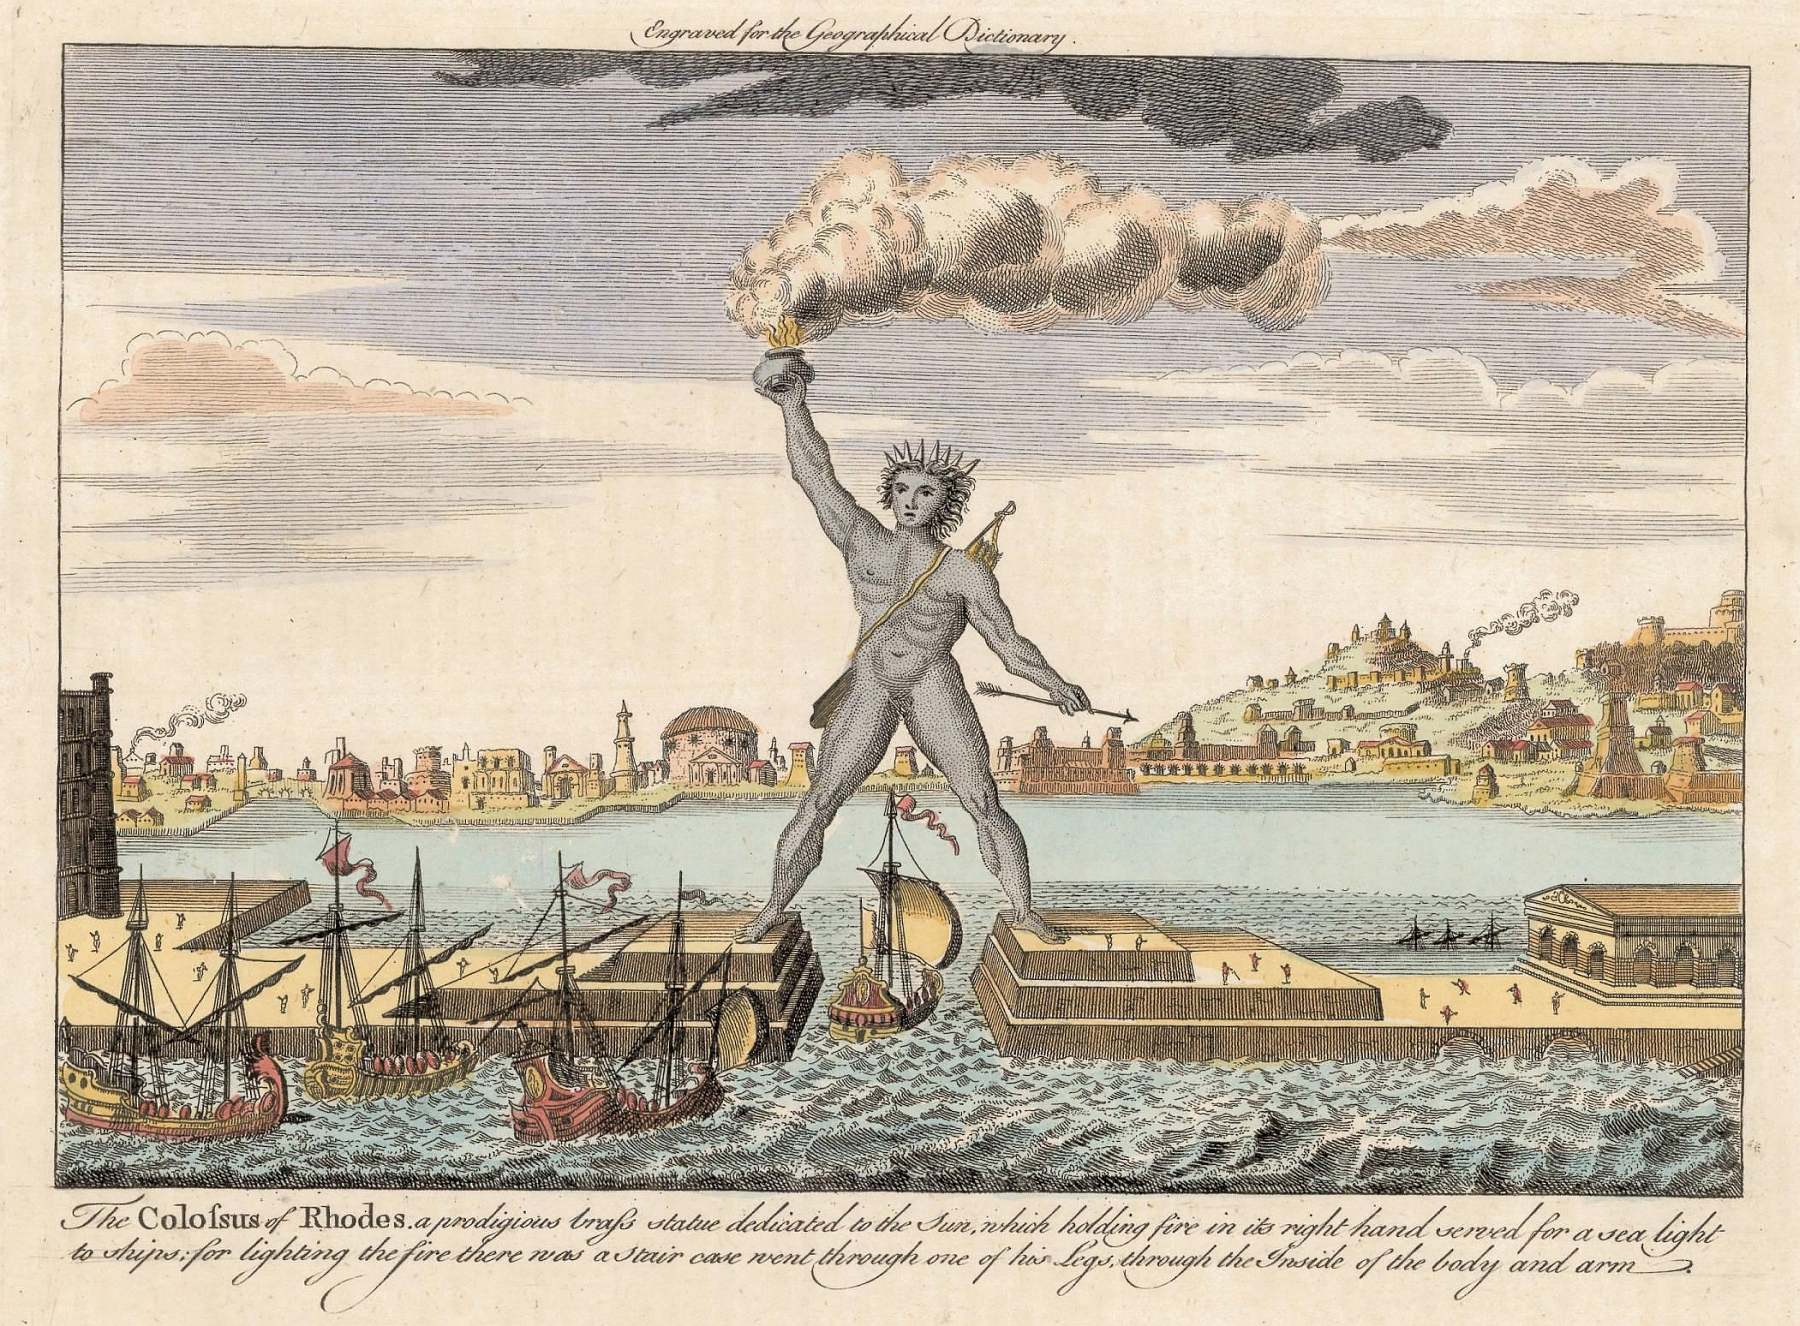 https://upload.wikimedia.org/wikipedia/commons/6/6f/Colossus_of_Rhodes2.jpg